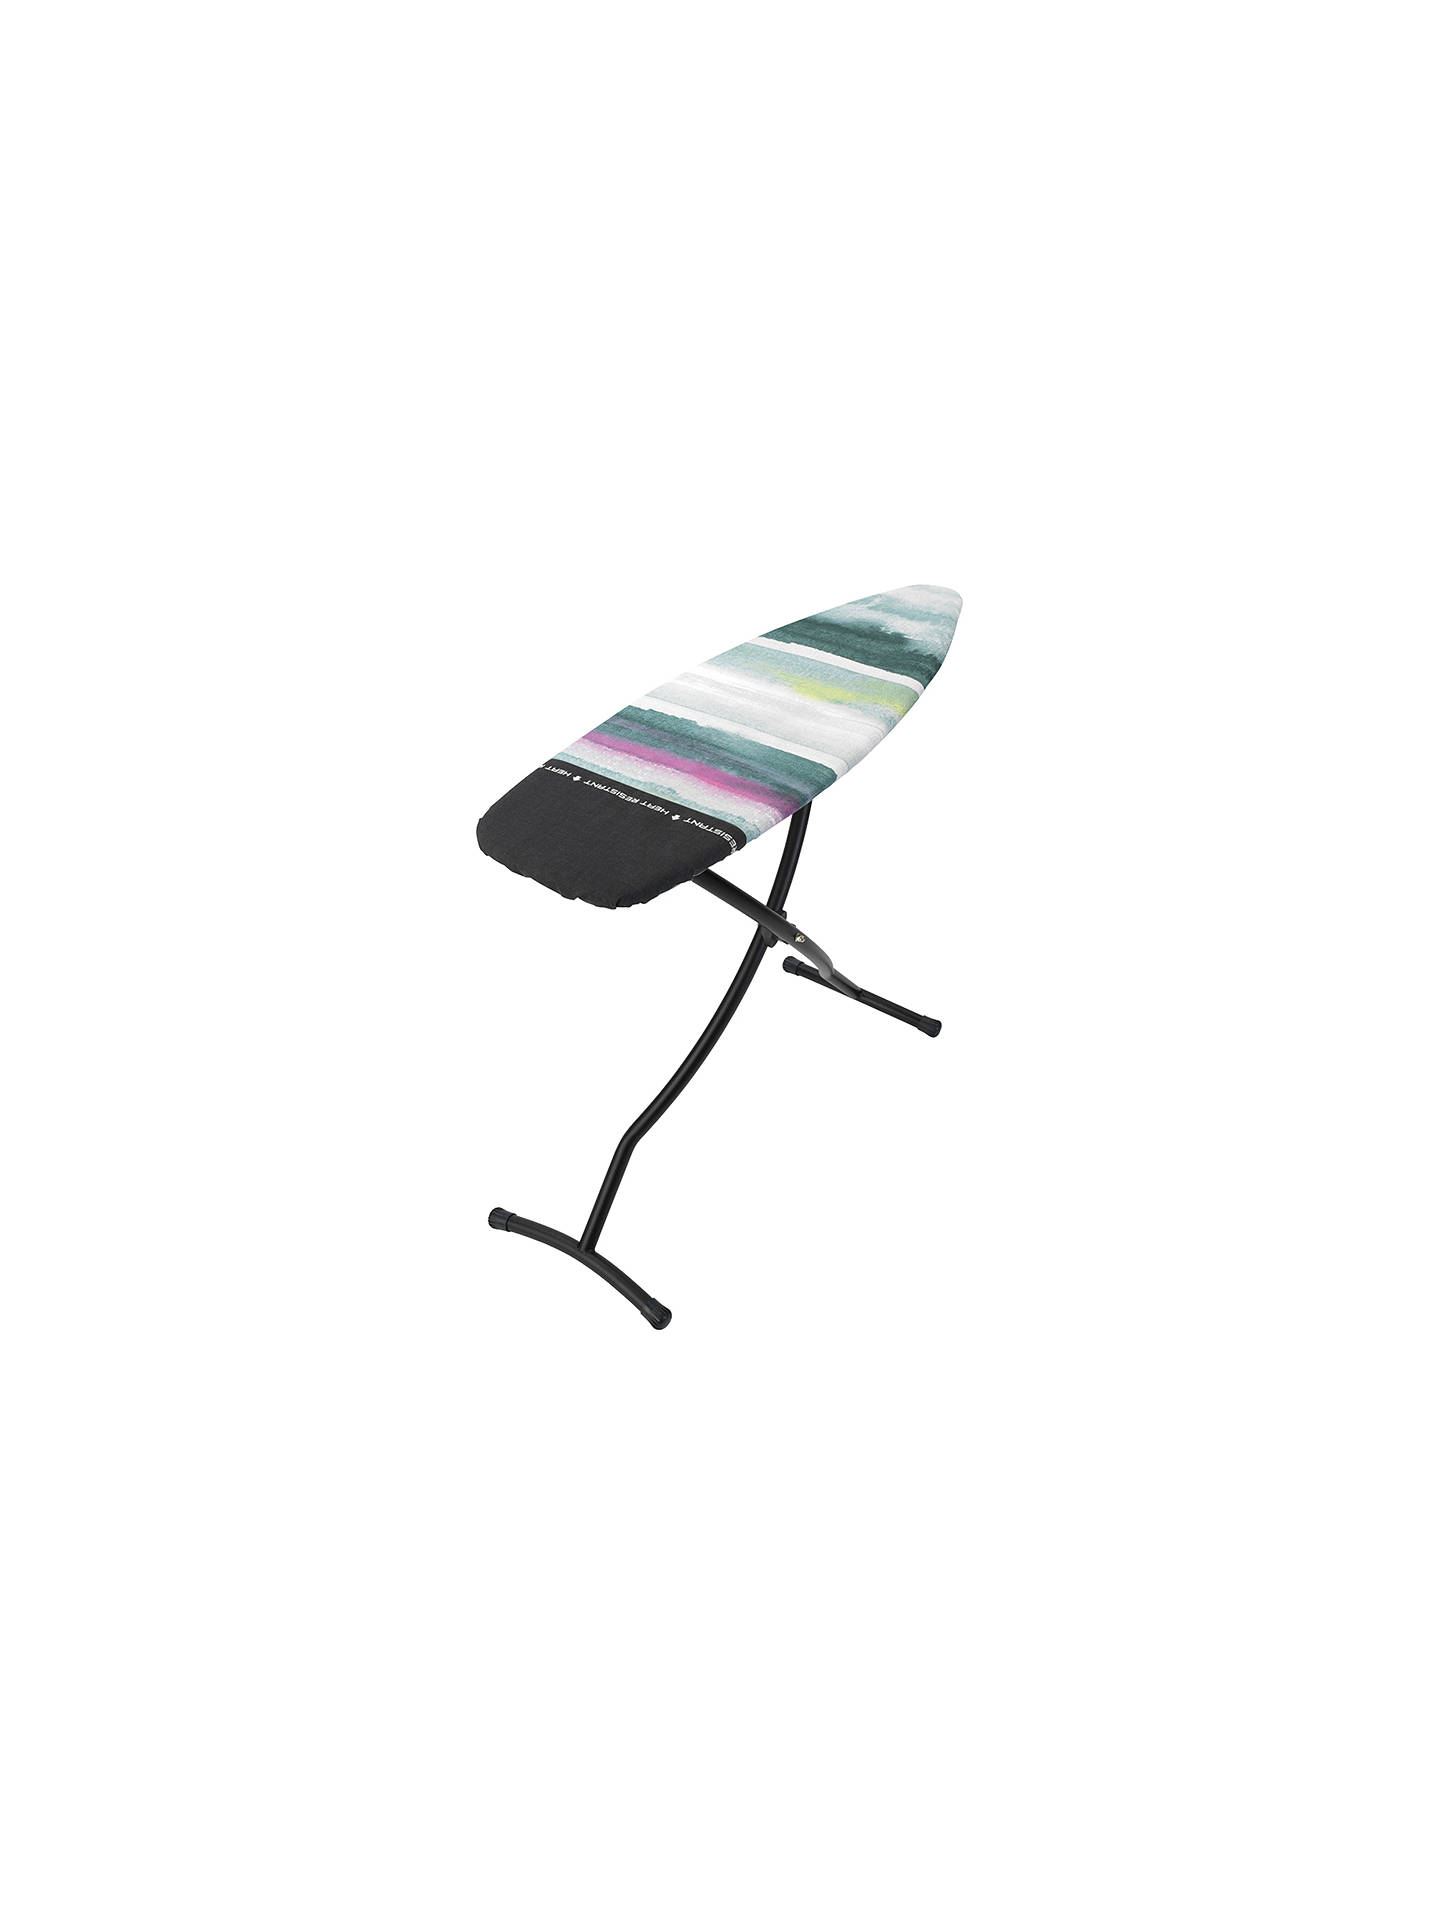 Buy Brabantia Morning Breeze Ironing Board, 135 x 45cm Online at johnlewis.com